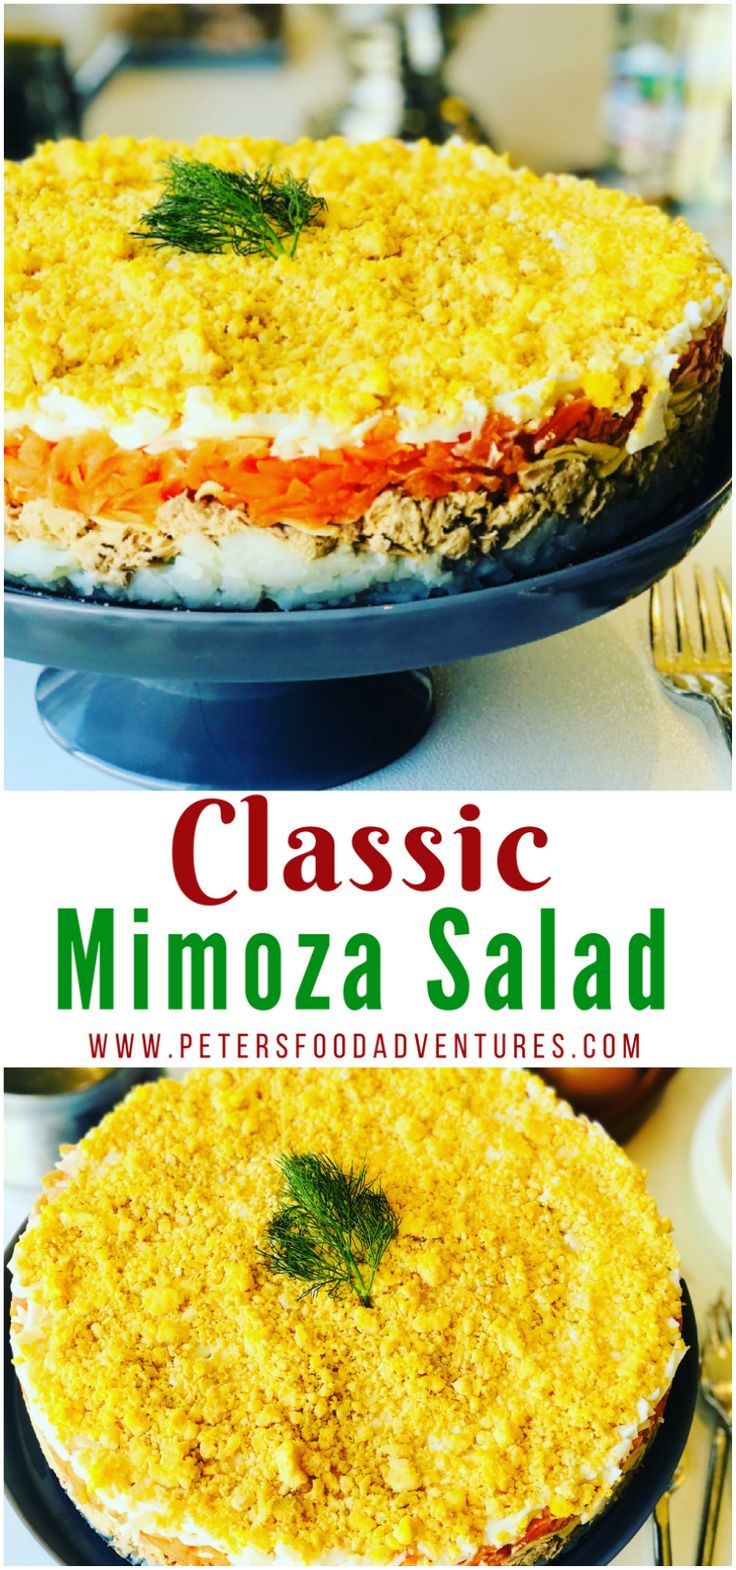 You have to try this Mimoza Salad (Салат Мимоза)! A delicious Russian layered salad popular during celebrations and holidays. A hearty salad with Tuna, Potatoes, Carrots, Eggs and of course, lots of Mayo. Who needs regular potato salad when you can have Mimoza!